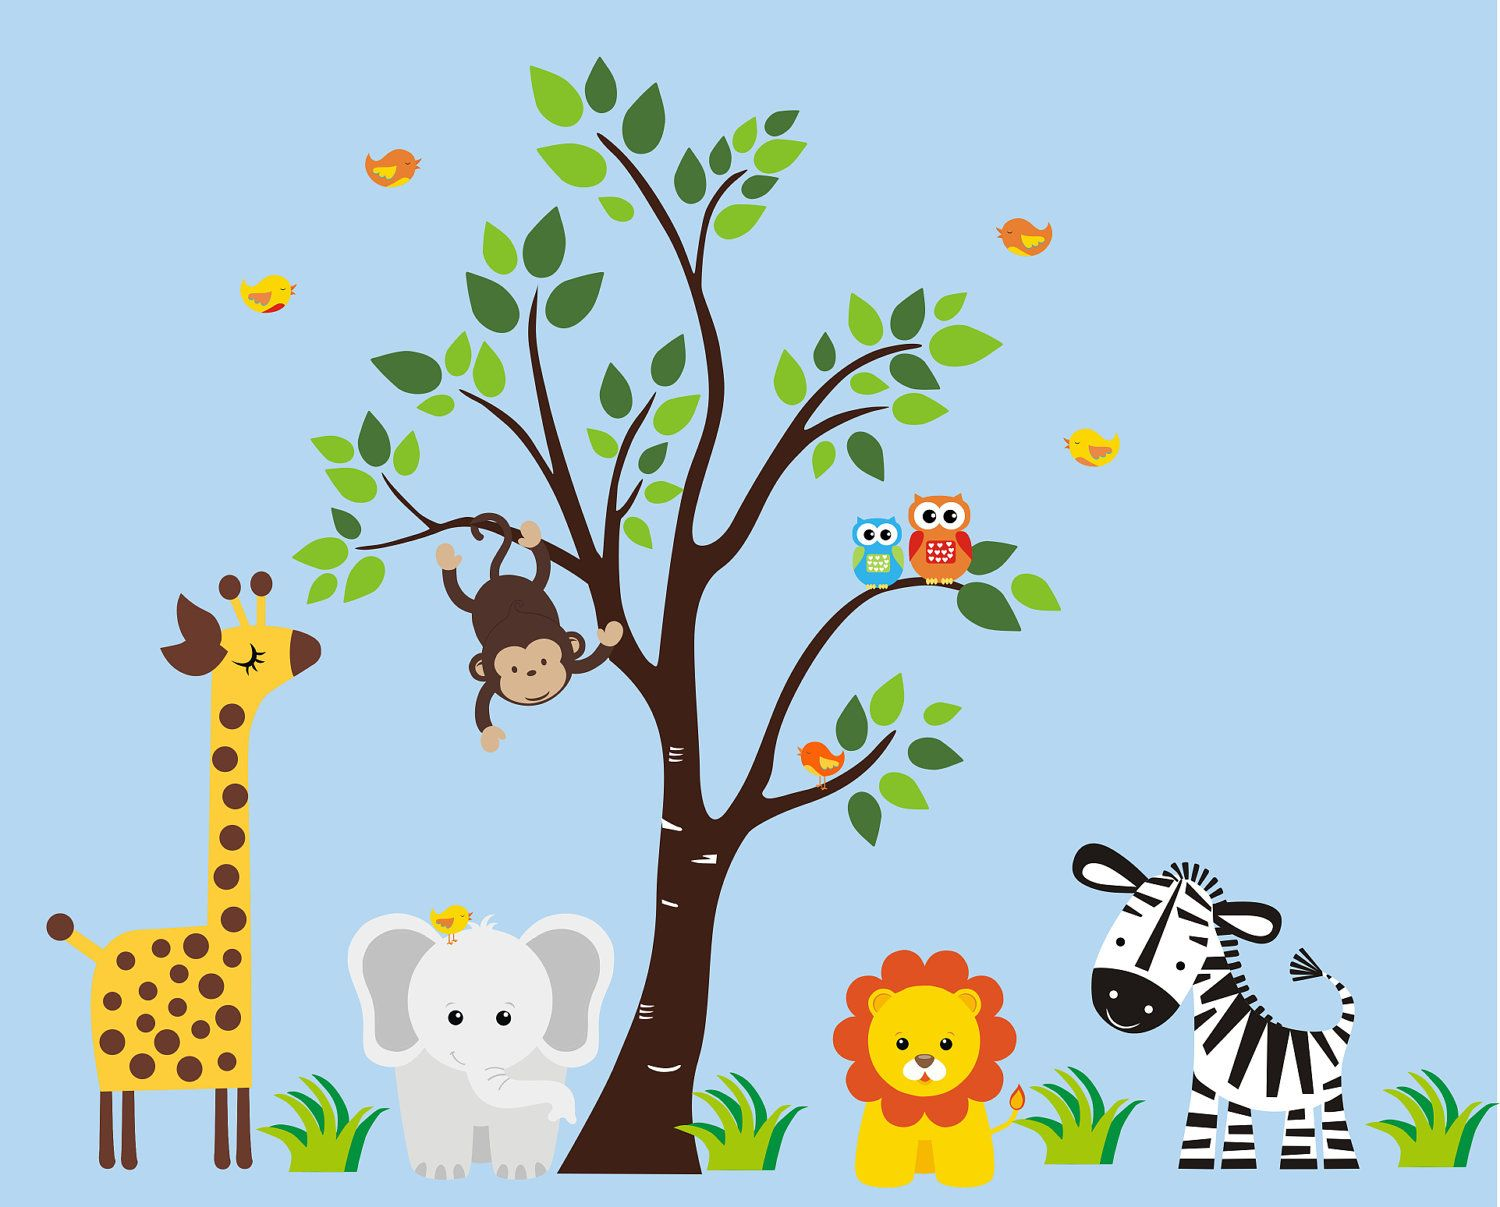 Tree Wall Decal With Jungle Animals   Nursery Wall Decal   Children Wall  Decal   191.1